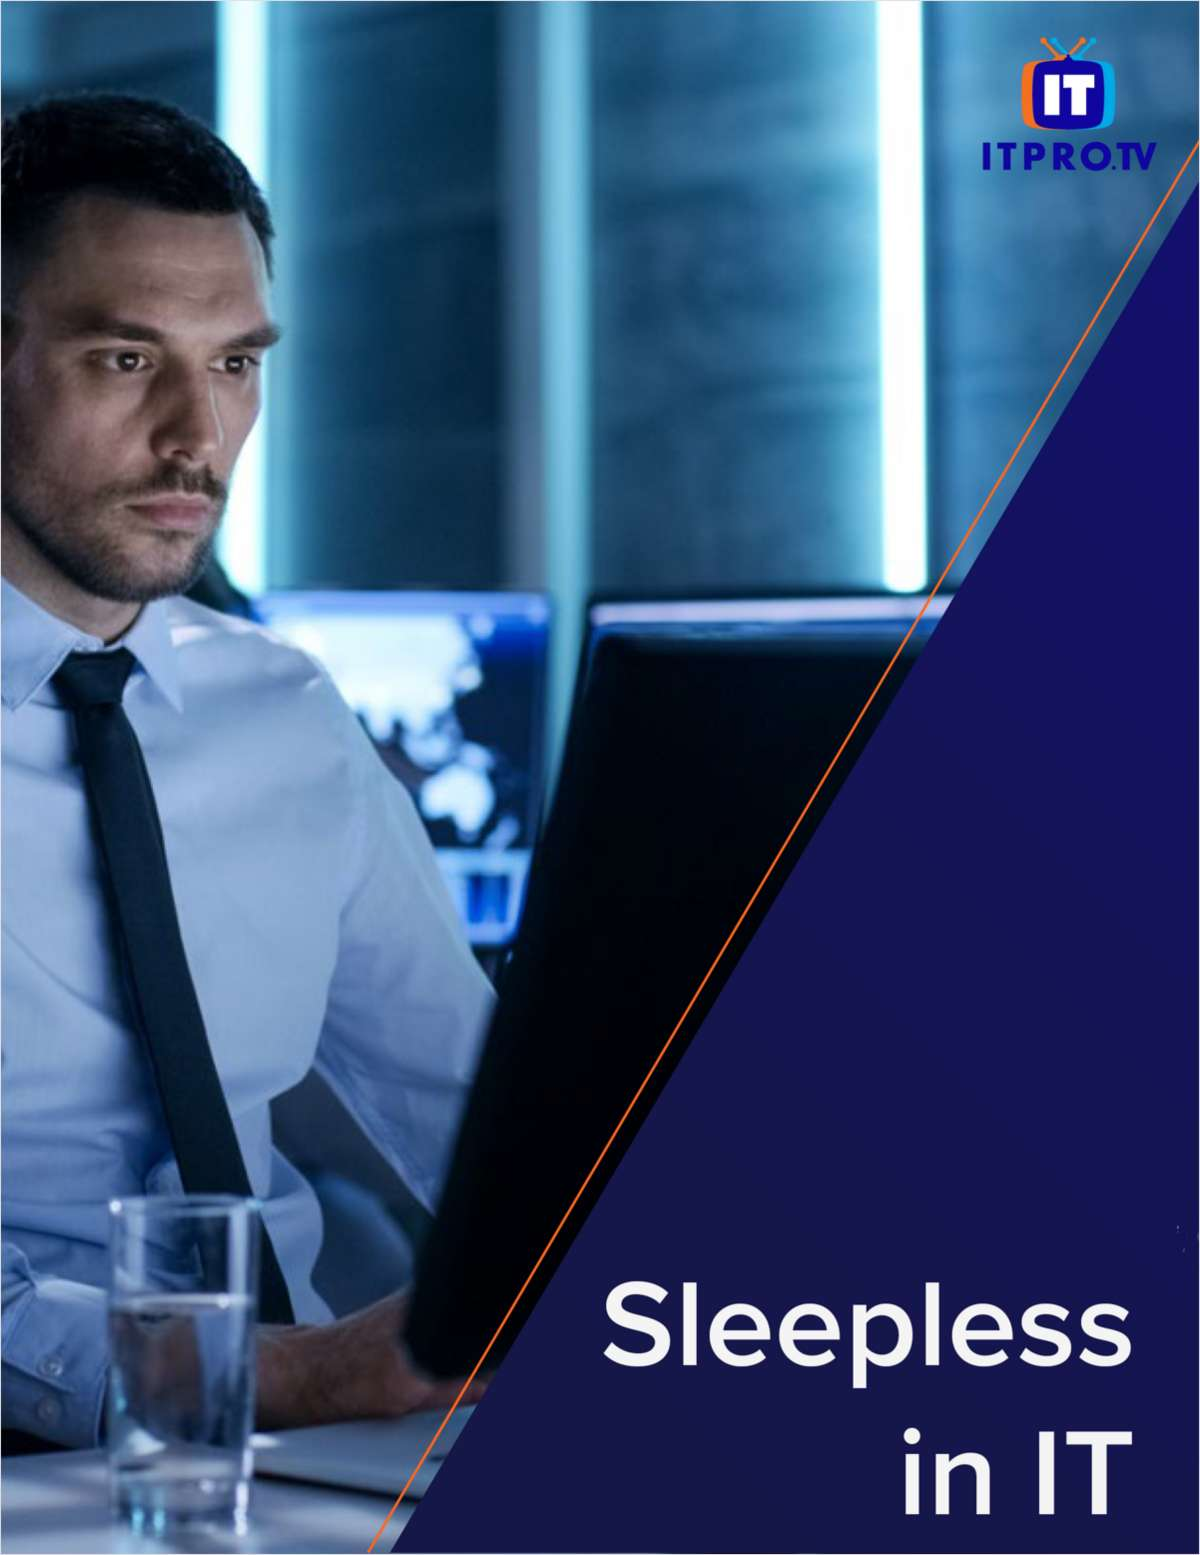 What keeps the IT leader up at night?